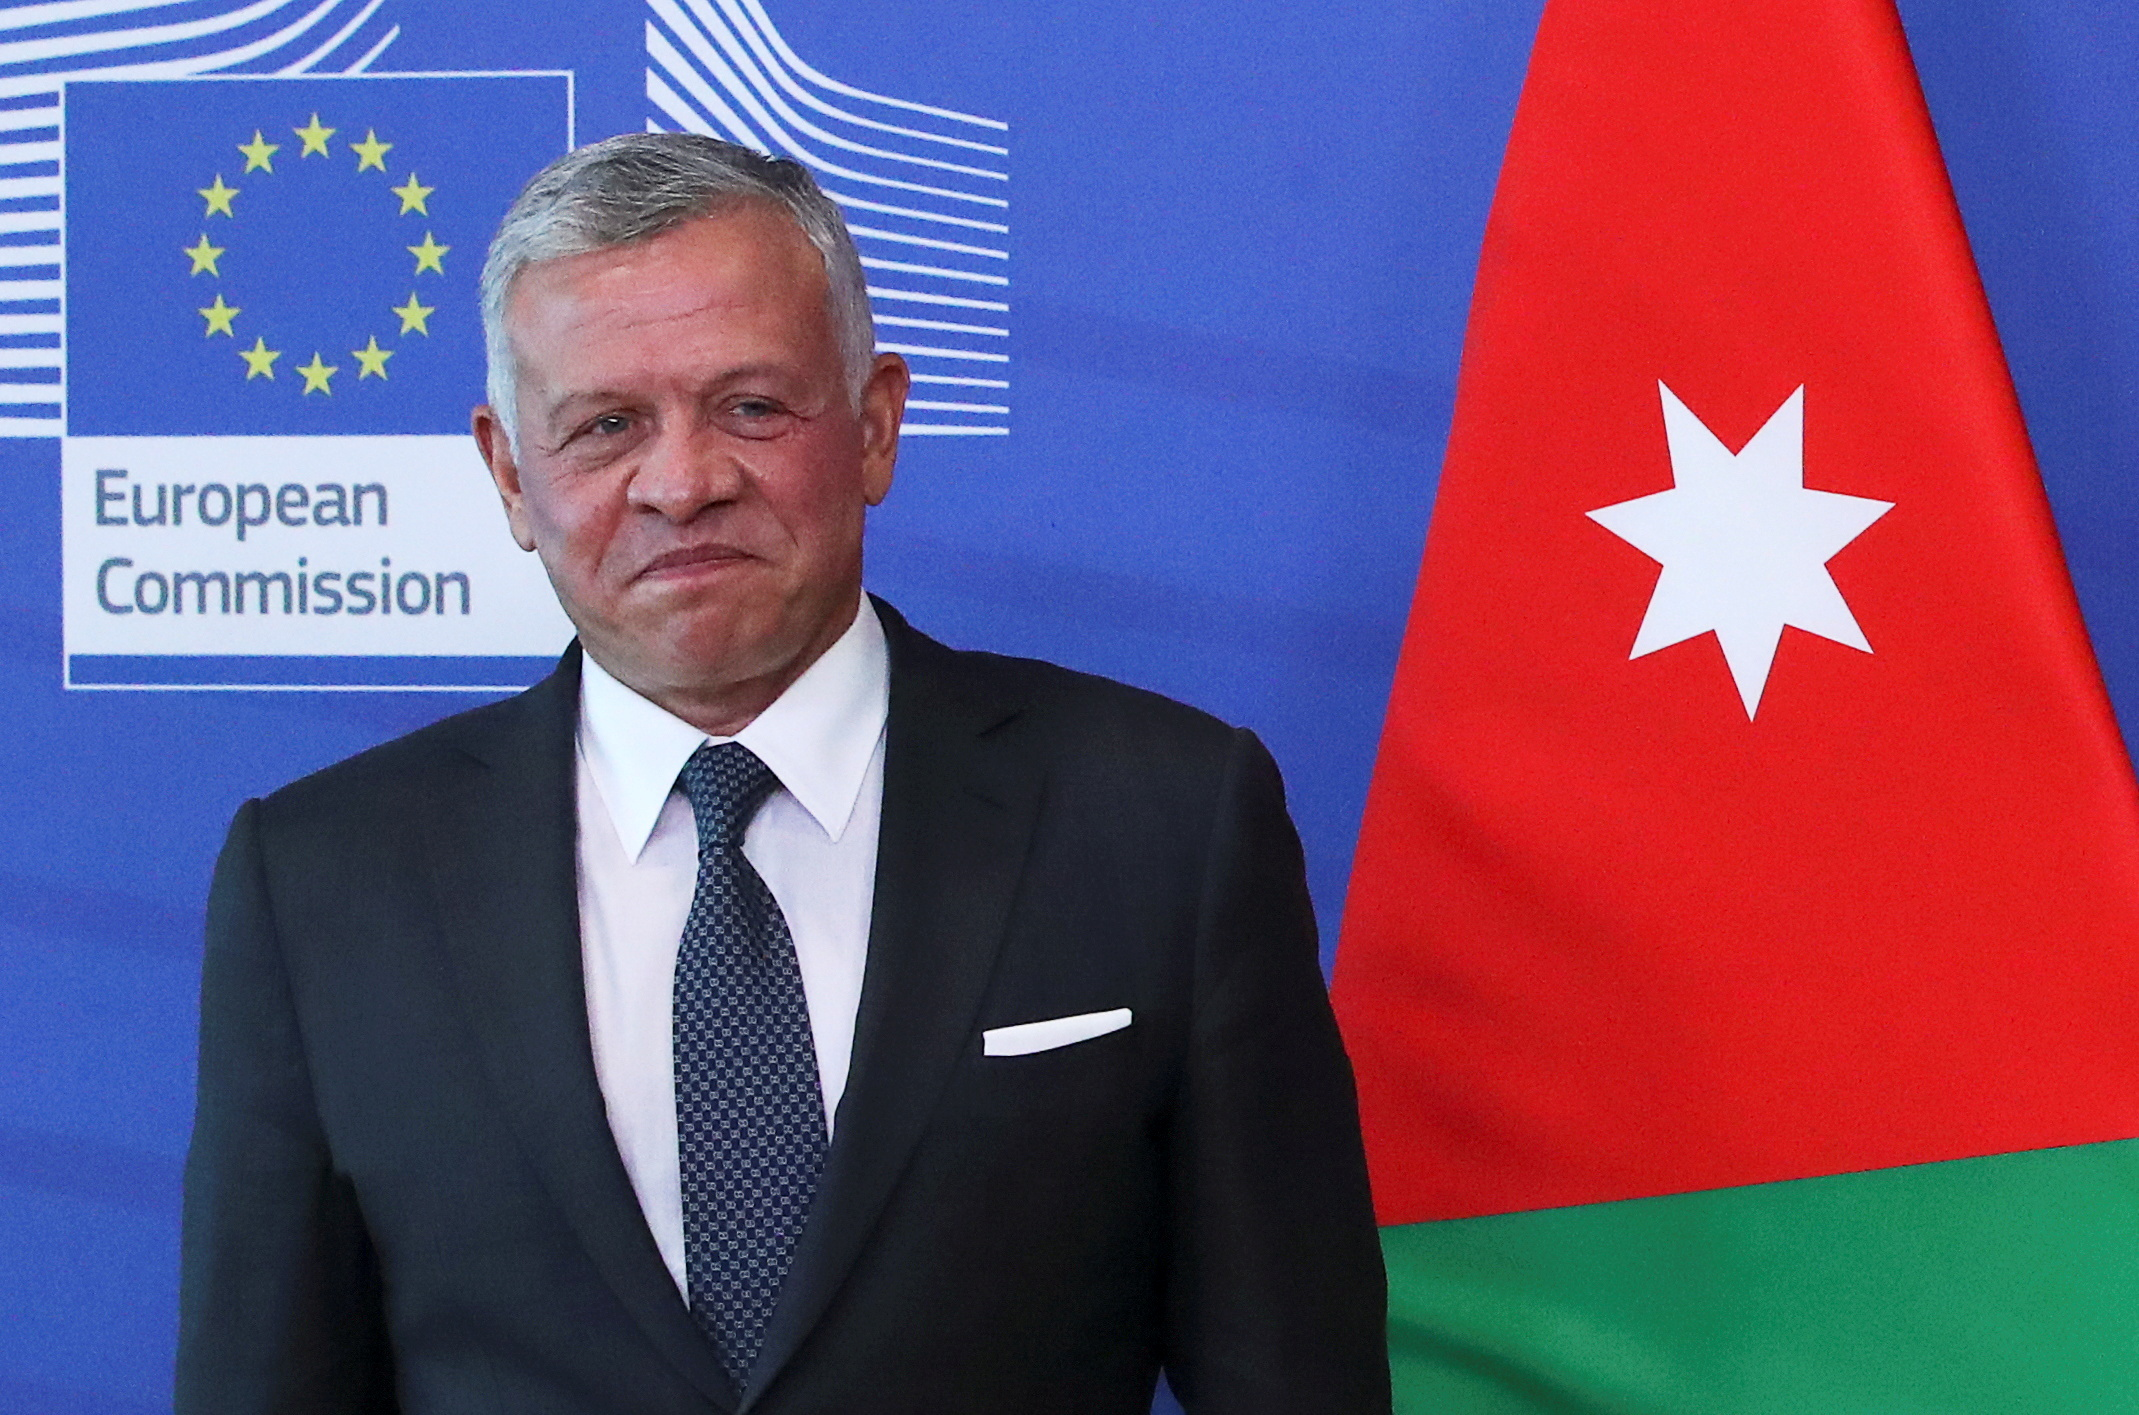 Jordan's King Abdullah II ibn Al Hussein  reacts while meeting with European Commission President Ursula von der Leyen (not pictured) in Brussels, Belgium May 5, 2021. REUTERS/Yves Herman/Pool/File Photo